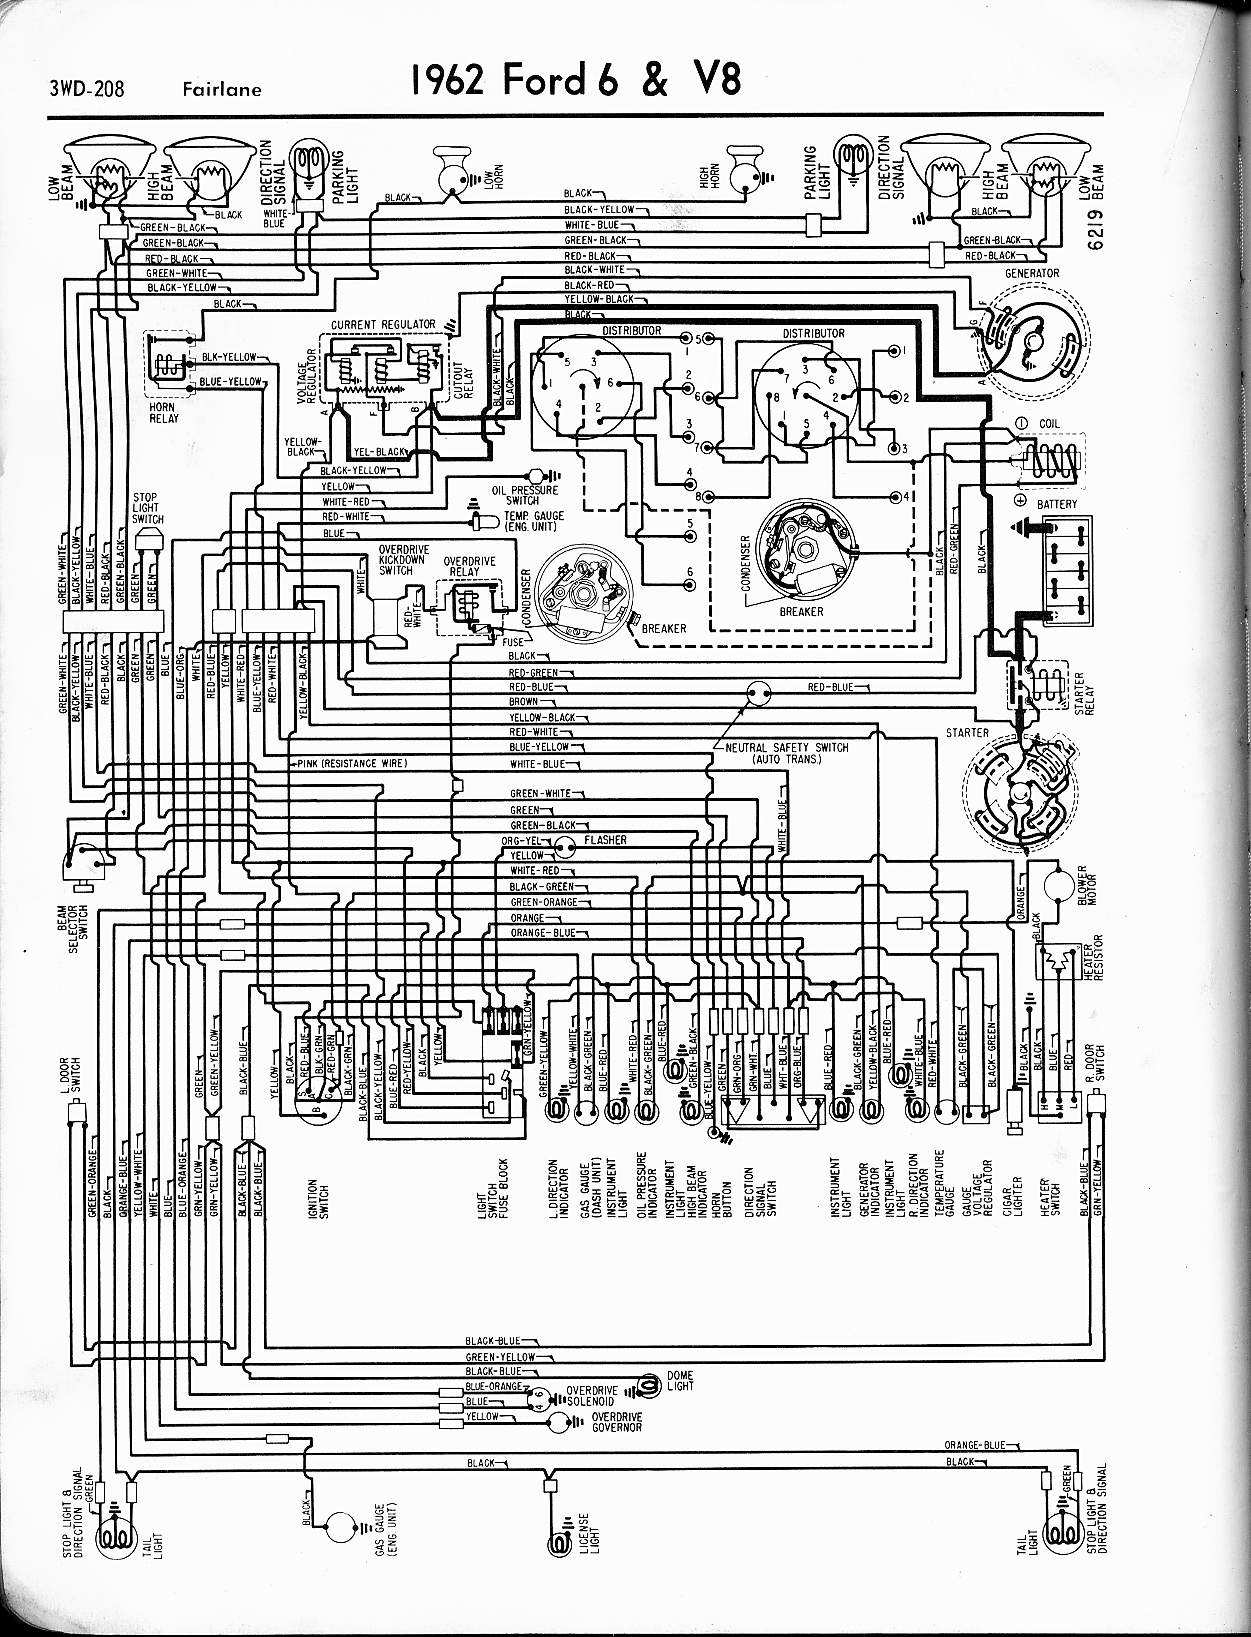 ford fairlane wiring diagram ford fairlane wiring diagram #6